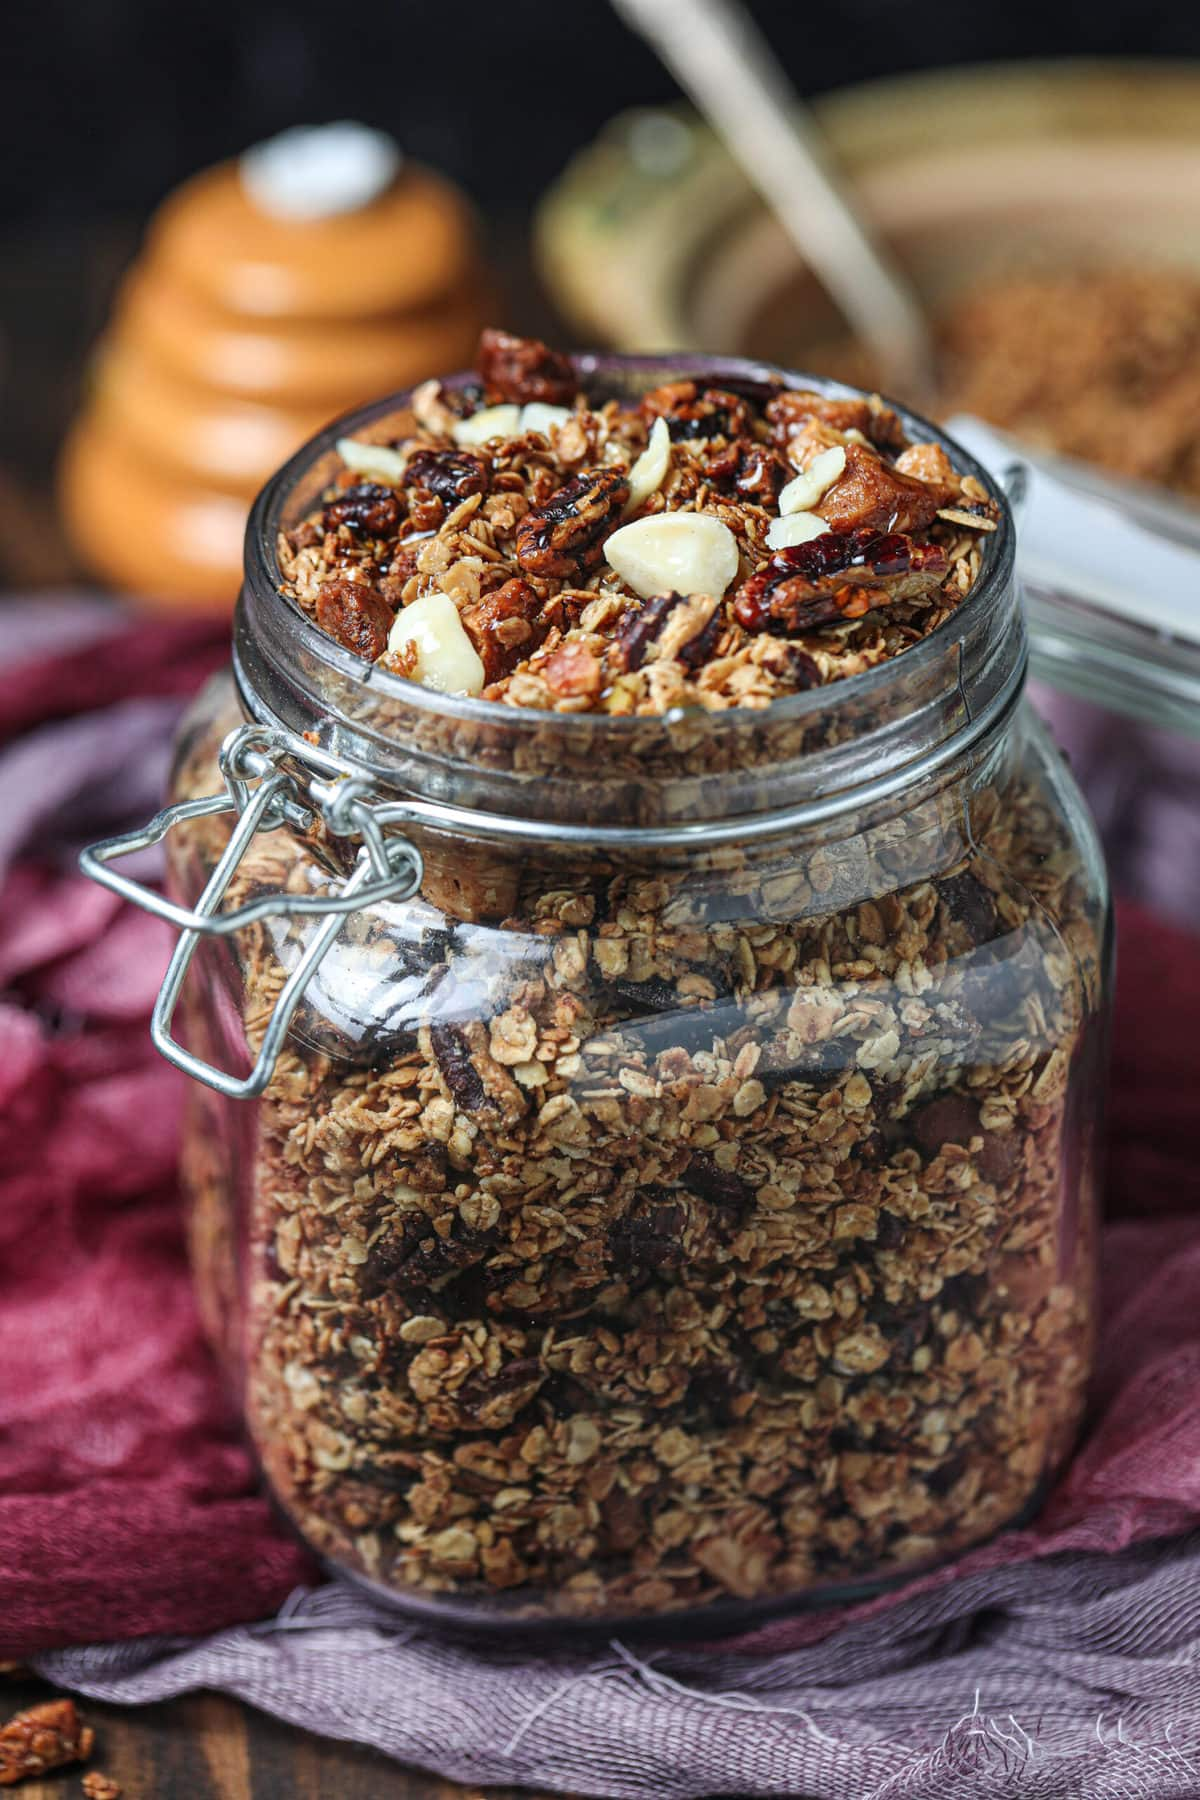 vegan granola recipe in a glass jar on a wooden table with lid open